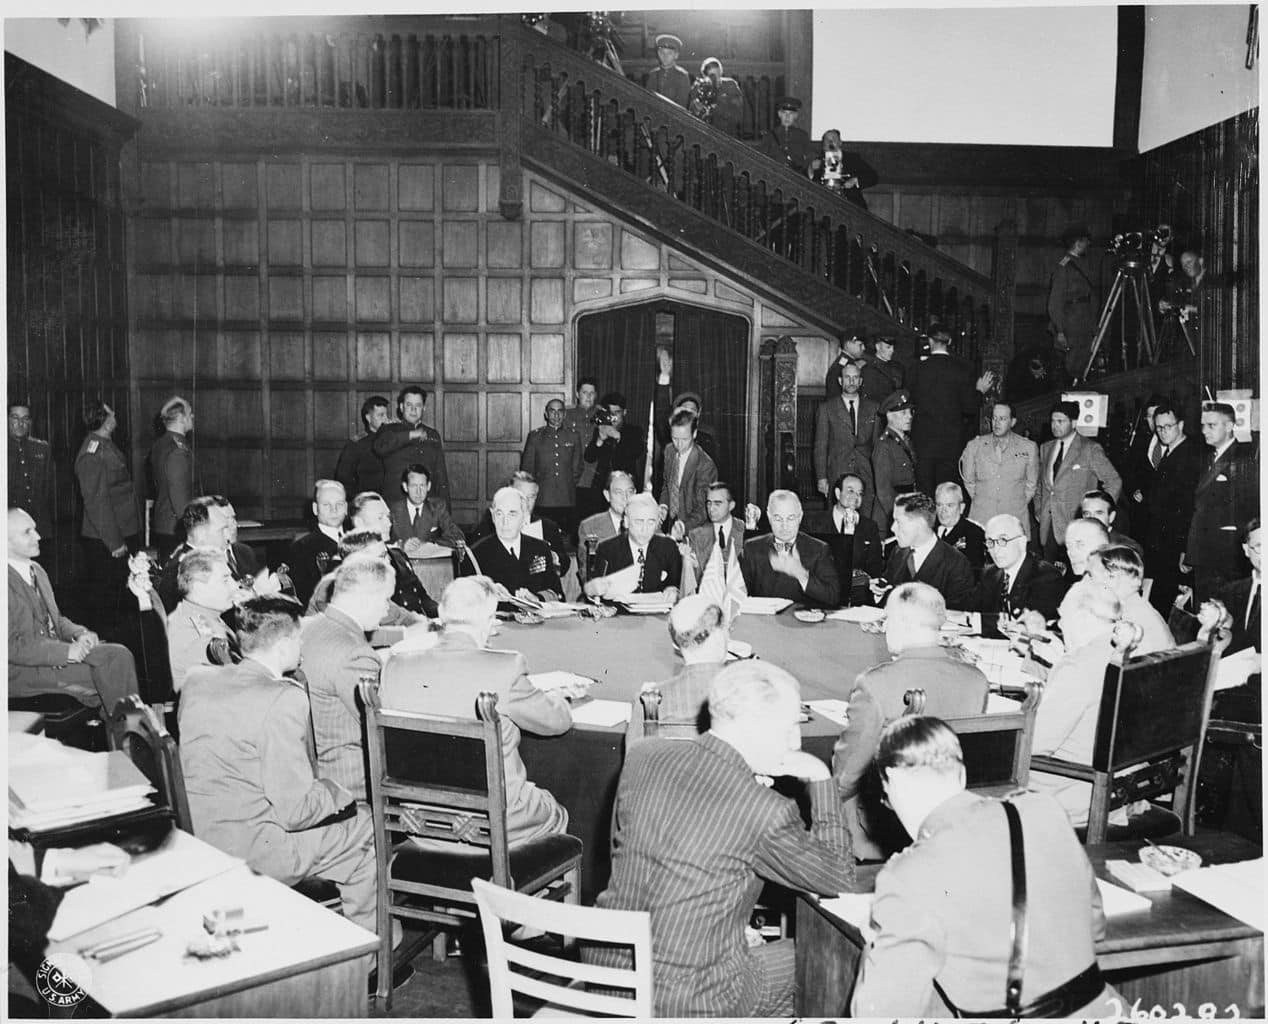 The Potsdam Conference - July 22nd 1945 - Another tense session of the Potsdam Conference would see the Big Three tackle the question of Poland again